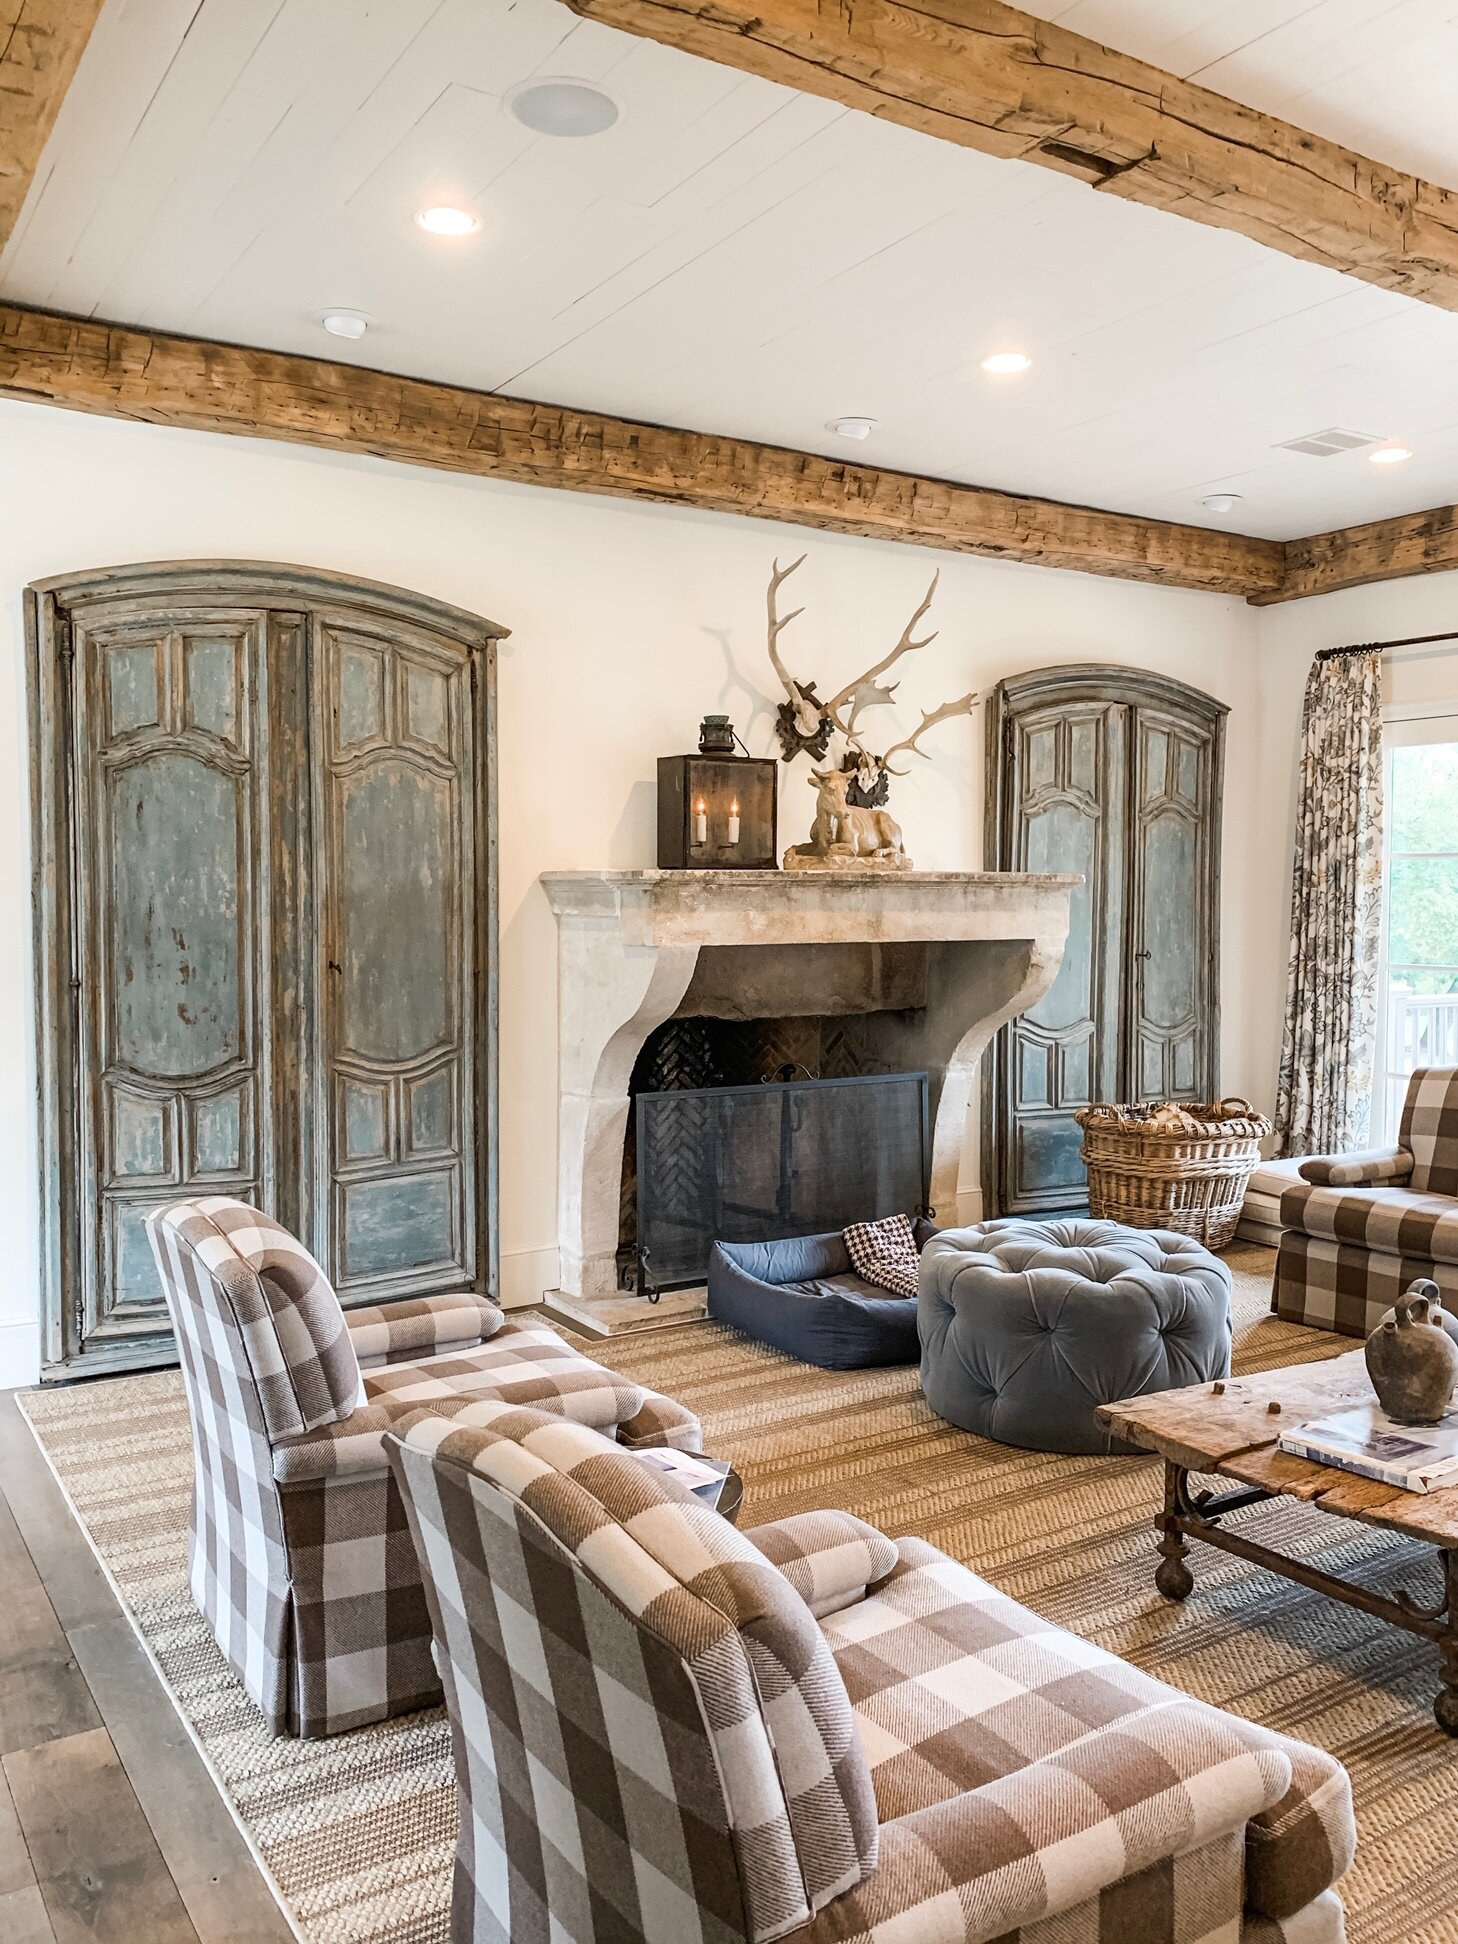 Photography by  Kaci lyford . design by  Lisa Luby Ryan . Shop antique fireplace mantels onine at  east end salvage .